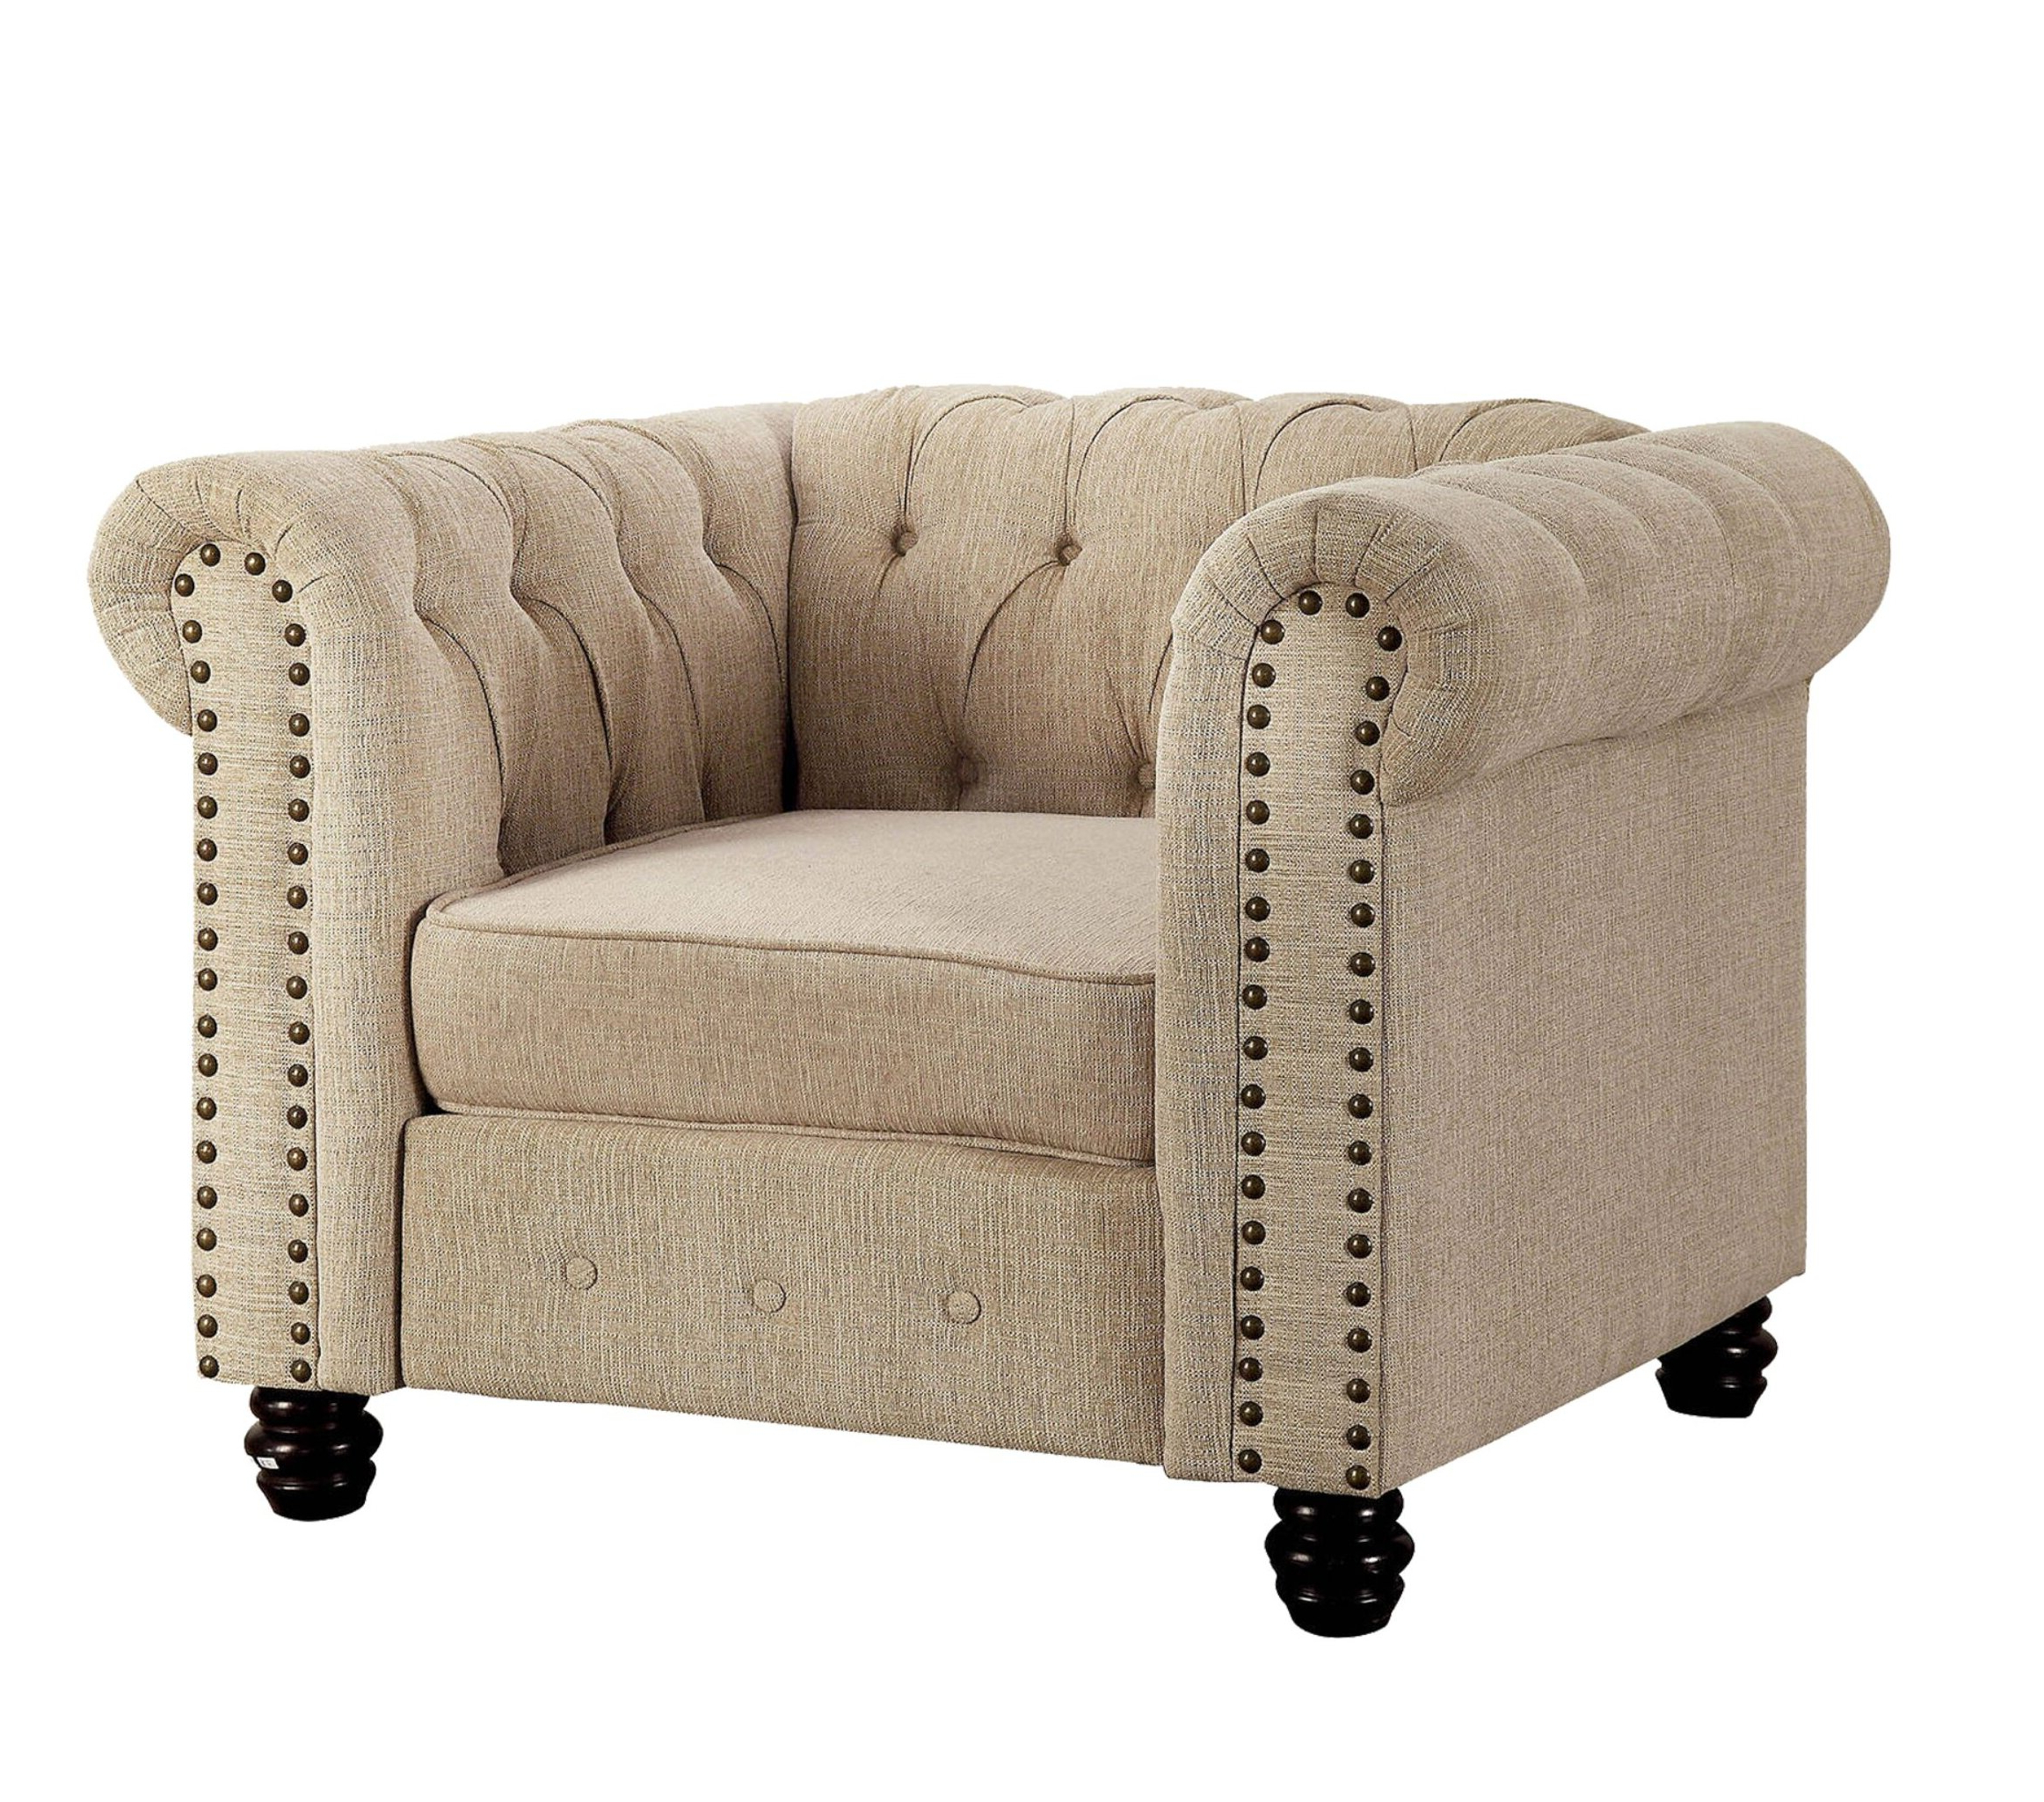 Chesterfield Espresso Wood Accent Chairs You'll Love In 2021 Within Most Popular Kjellfrid Chesterfield Chairs (View 11 of 20)